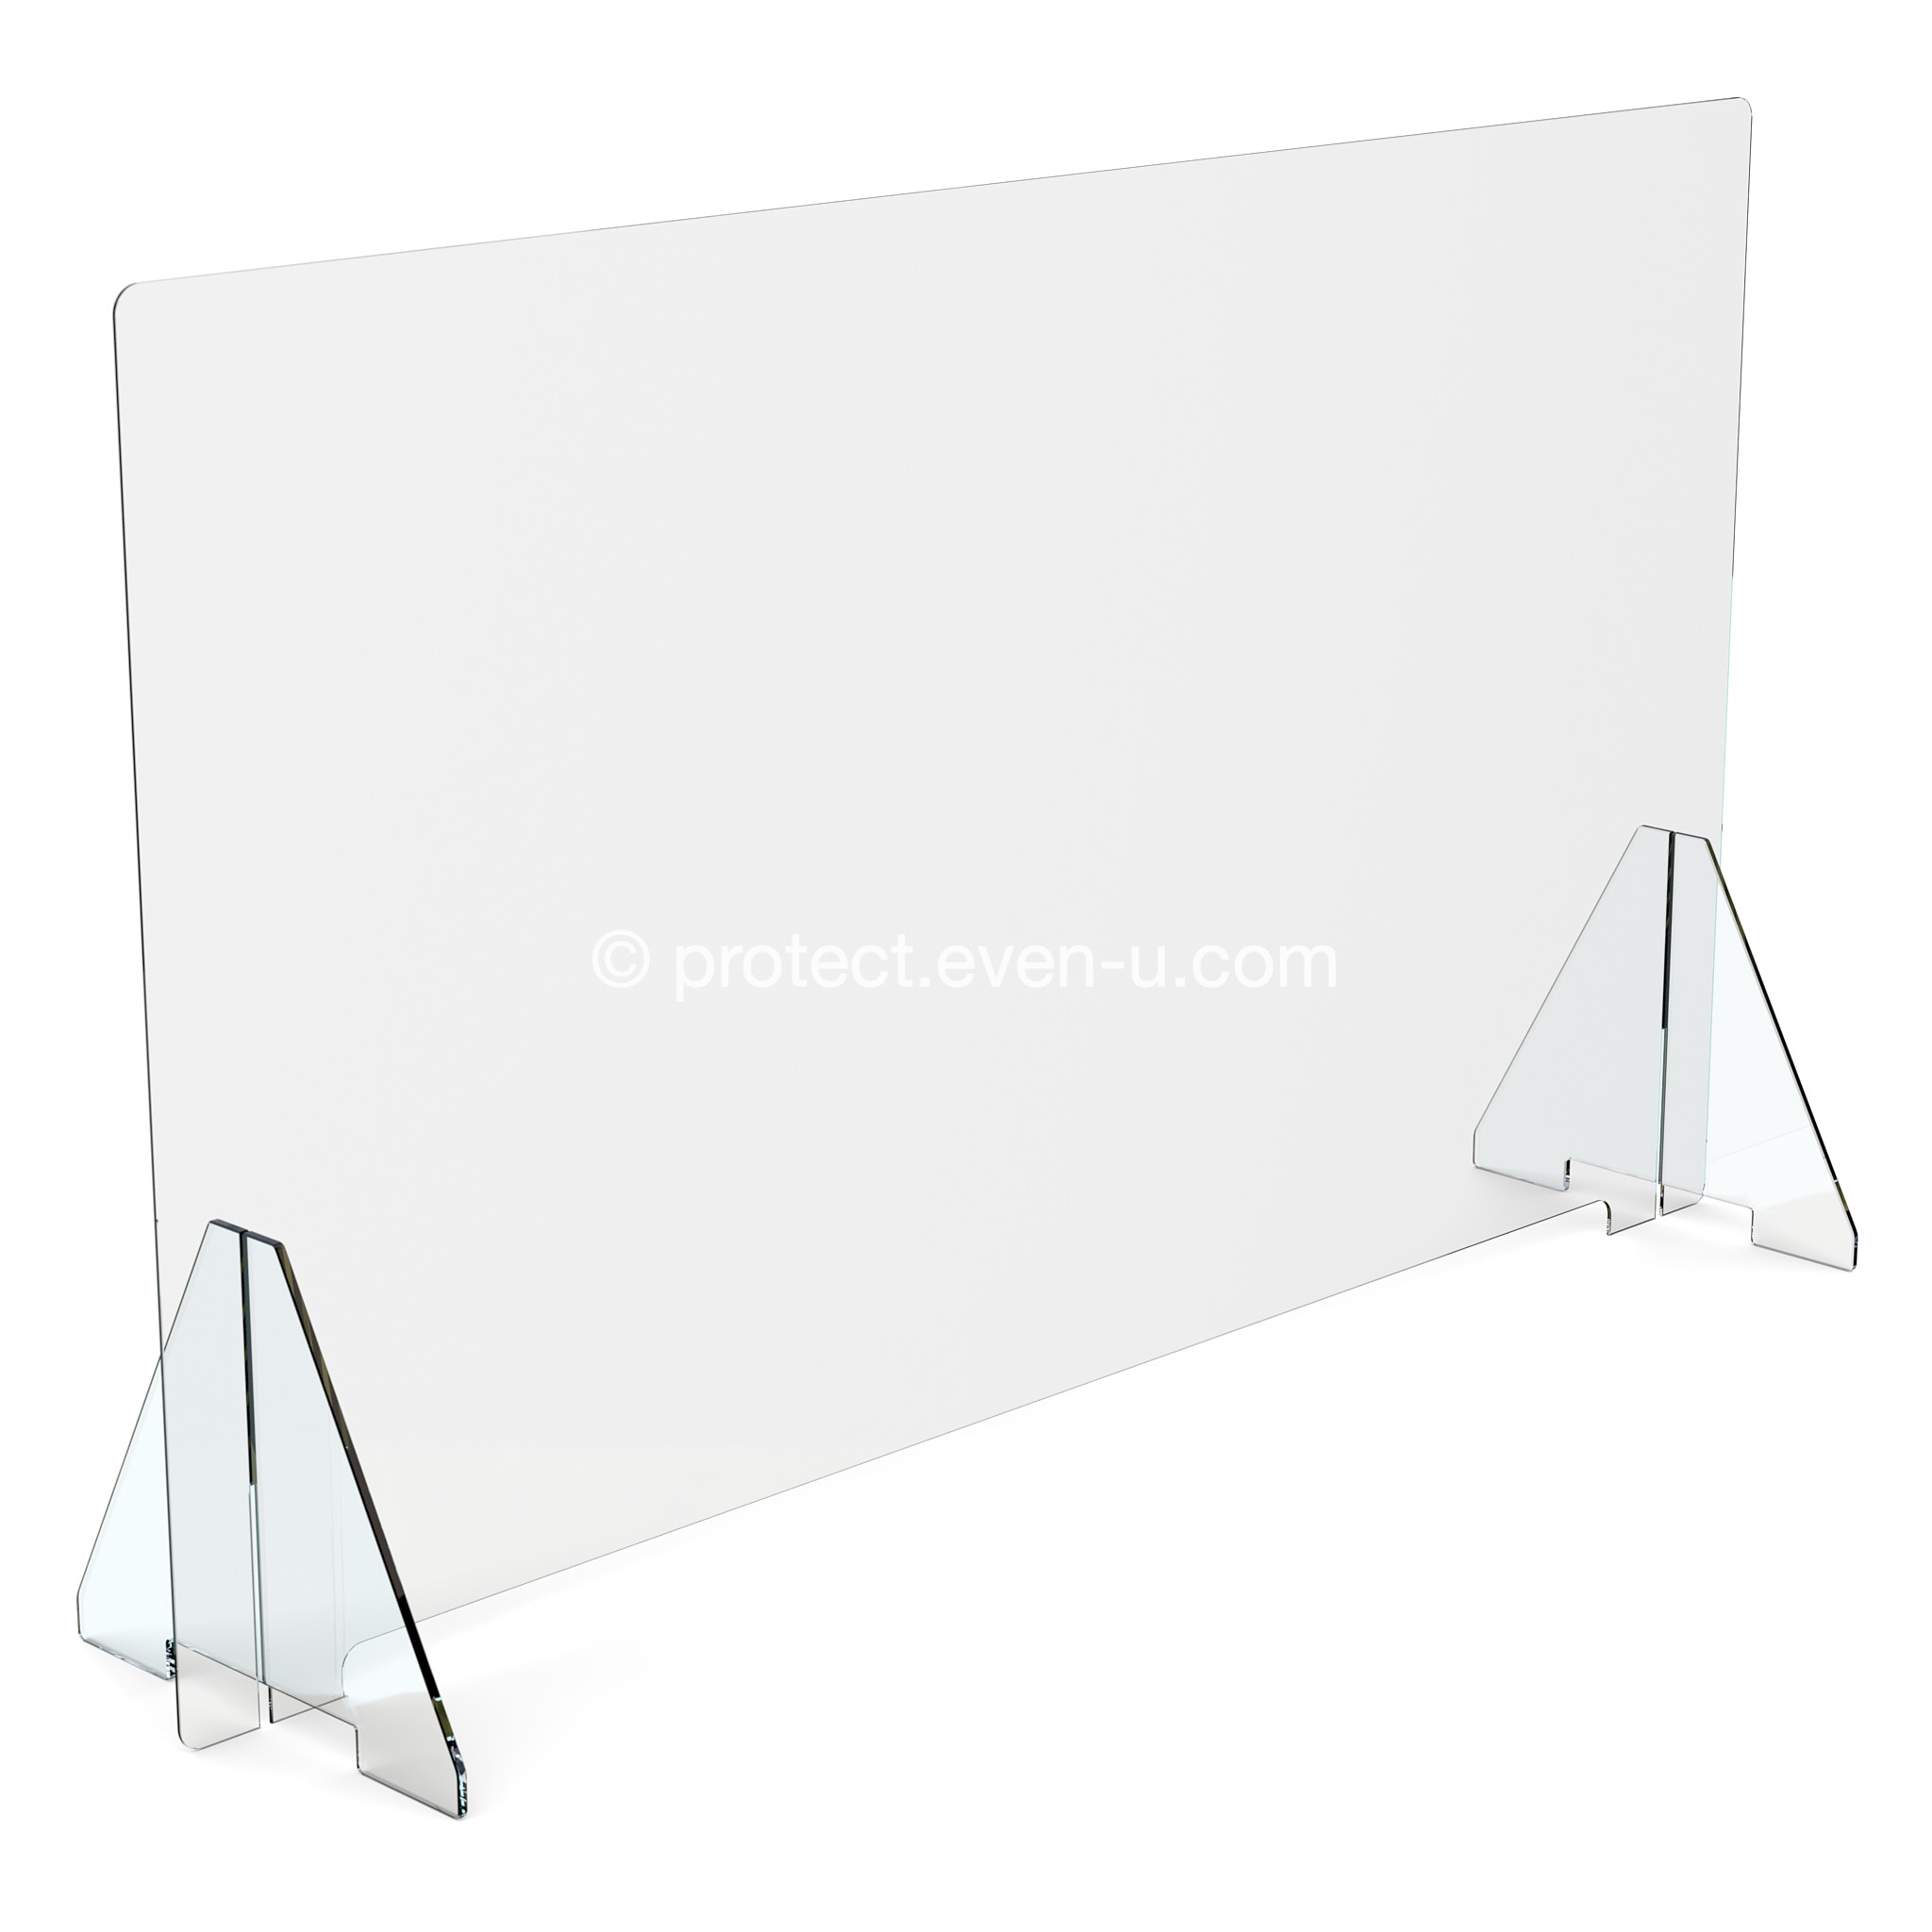 Shop Image of the 120cm Desk Covid-19 Protection Screen